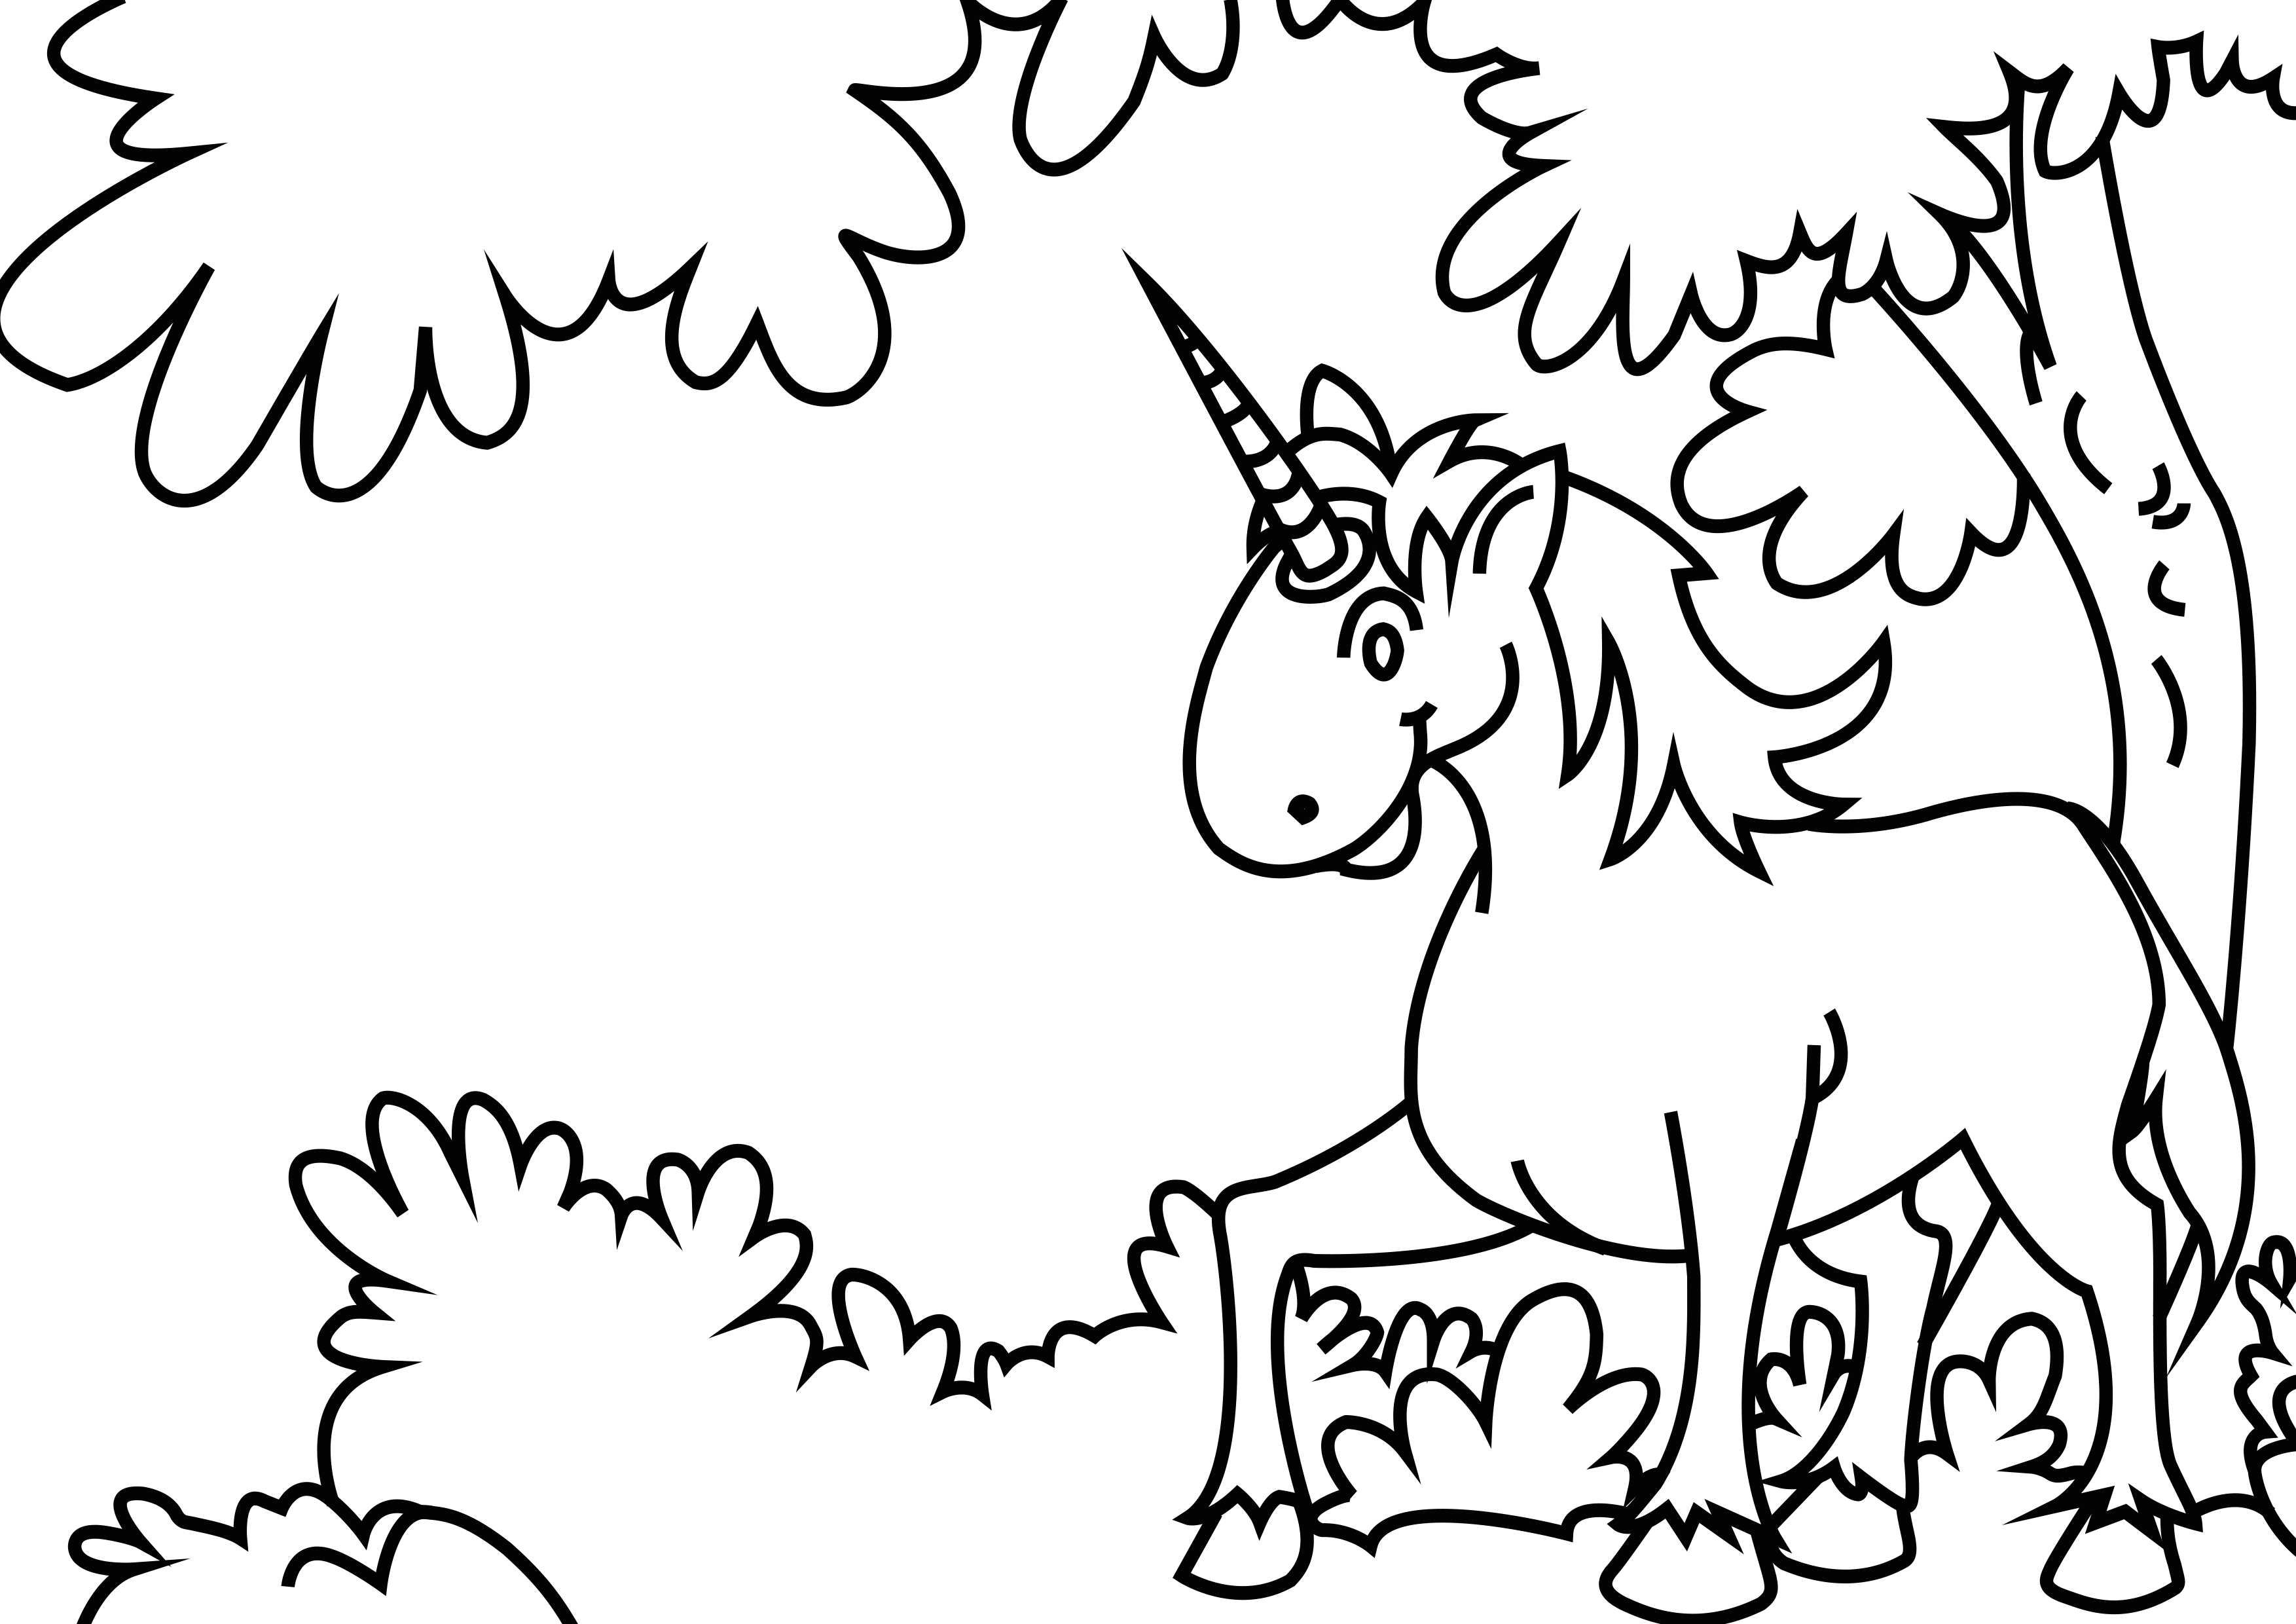 Unicorn00_outline.PNG